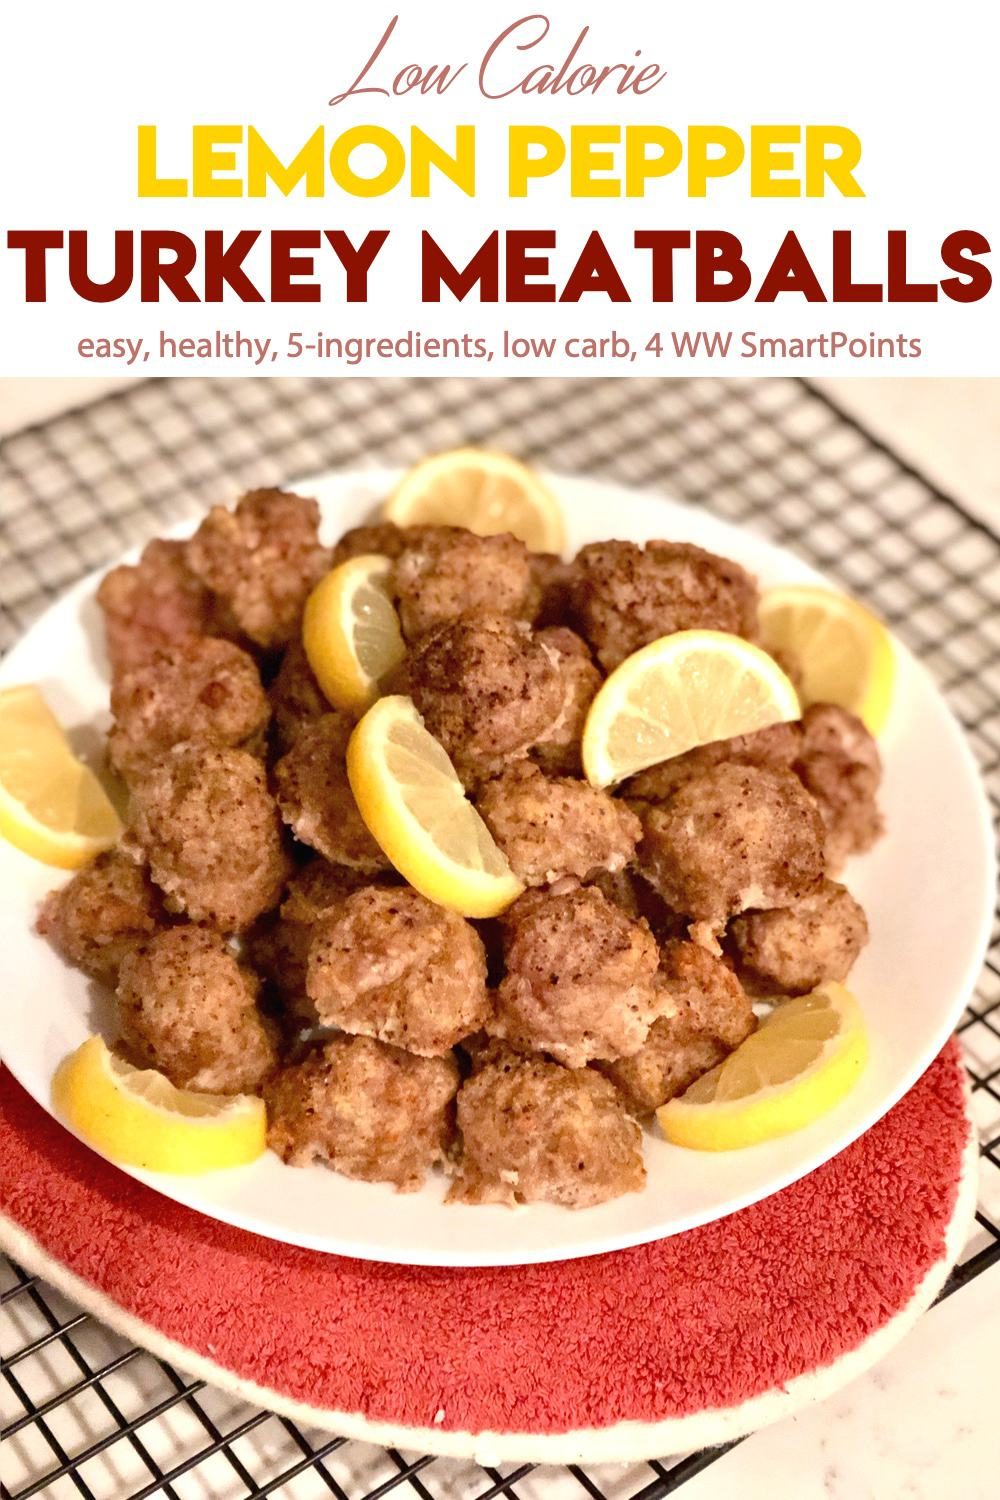 This easy 5-ingredient meatball recipe will have you snacking on protein-packed, low-carb Lemon Pepper Turkey Meatballs in 30 minutes or less! #lemonpepperturkeymeatballs #lemonpeppermeatballs #meatballs #lowcaloriemeatballs #ww #wwfamily #weightwatchers #easyhealthyrecipe